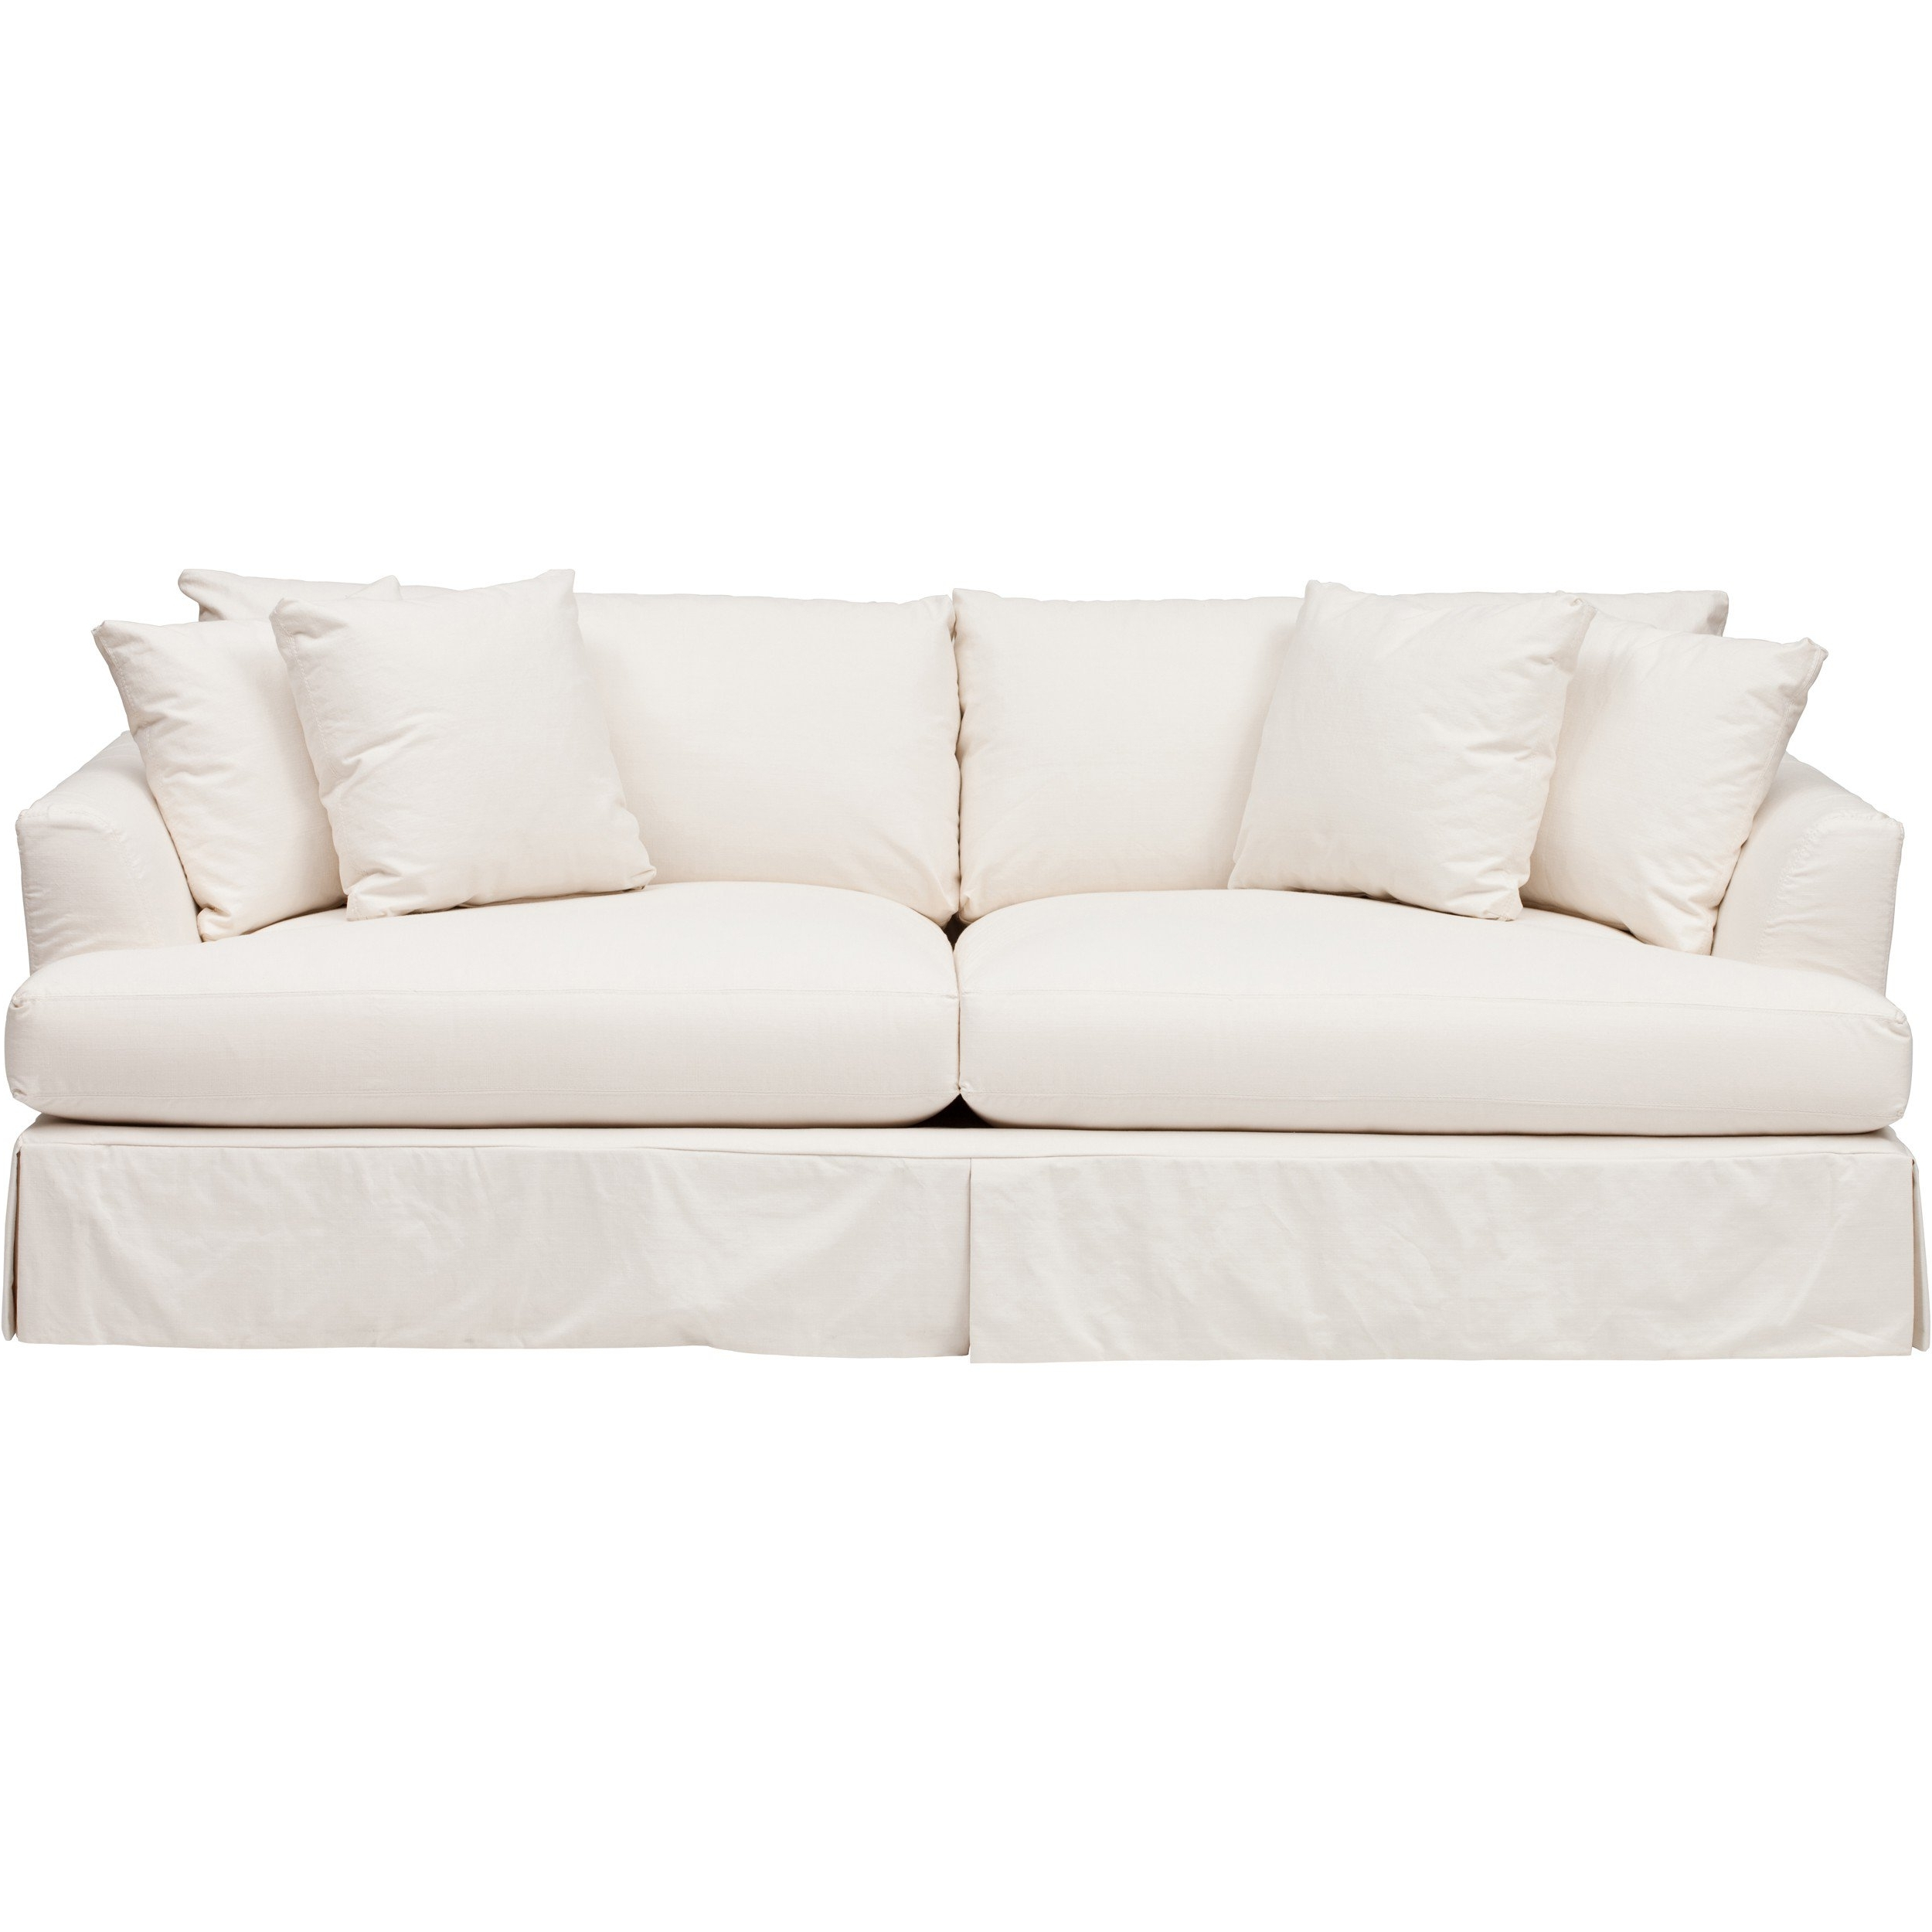 Most Recently Released Andre Slipcover Sofa, Dyno White – Sofas – Custom Upholstery With Regard To White Sofa Chairs (View 10 of 20)